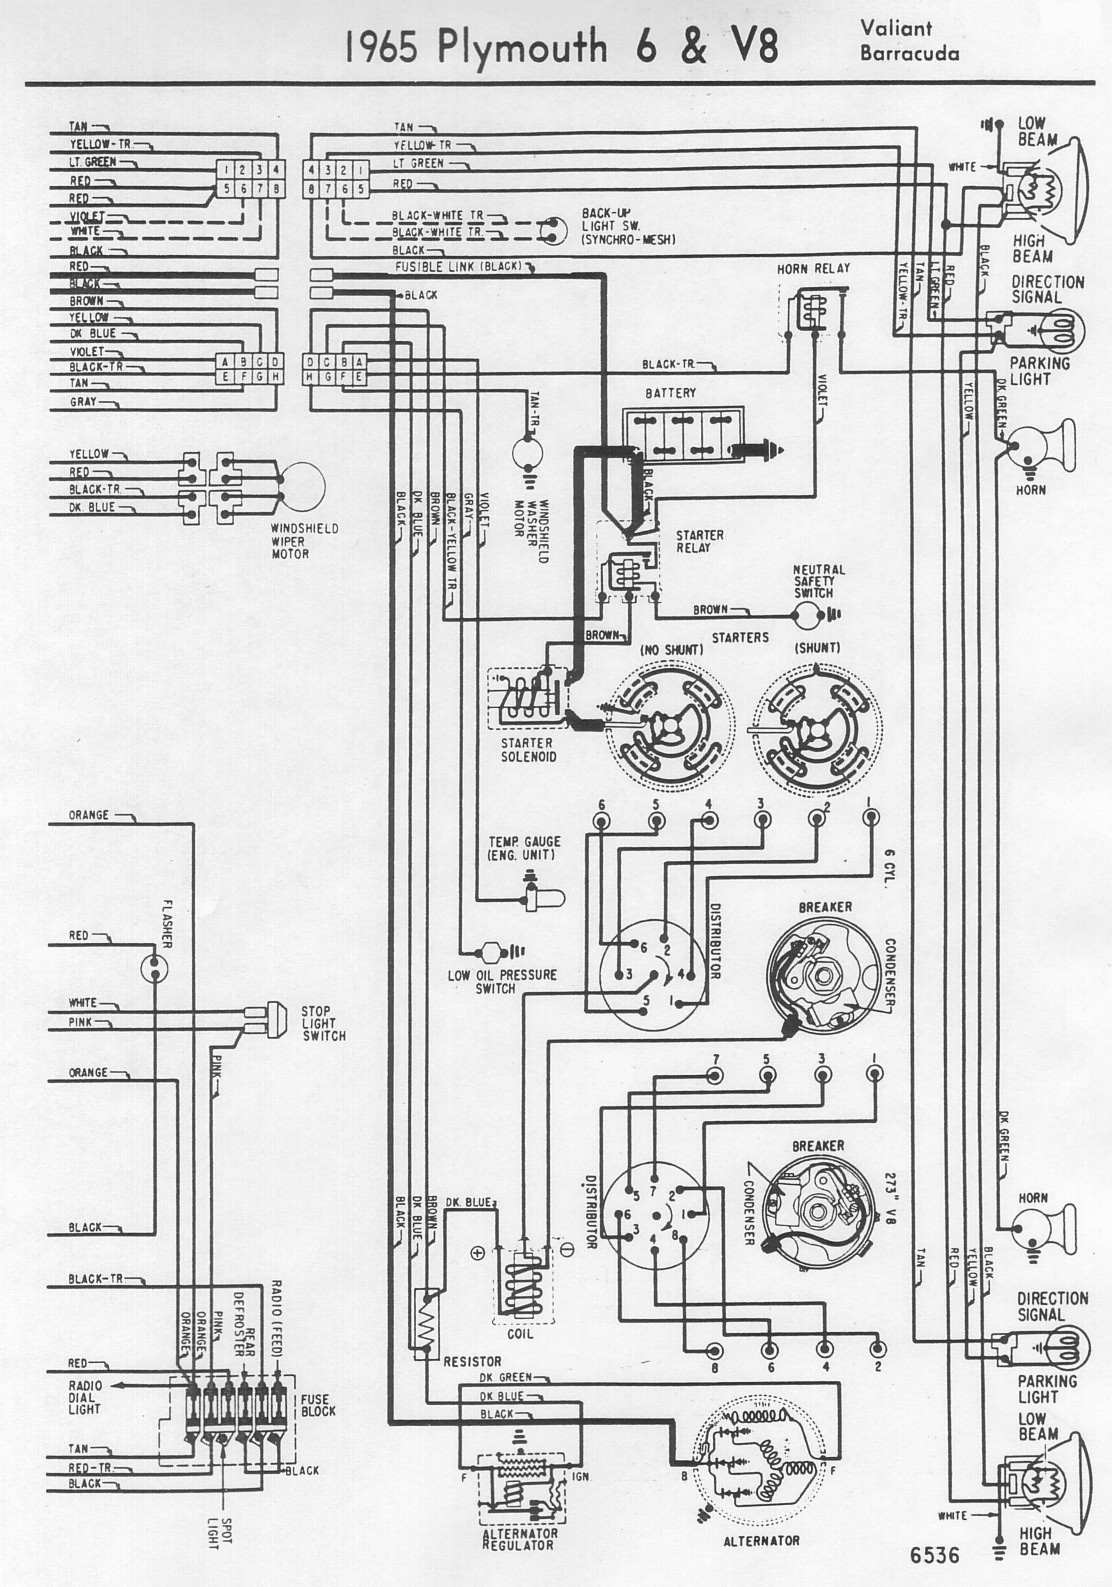 WIRING 68 Plymouth Barracuda Wiring Diagram FULL Version HD Quality Wiring  Diagram - EARTHLYVIEWS.KINGGO.FR